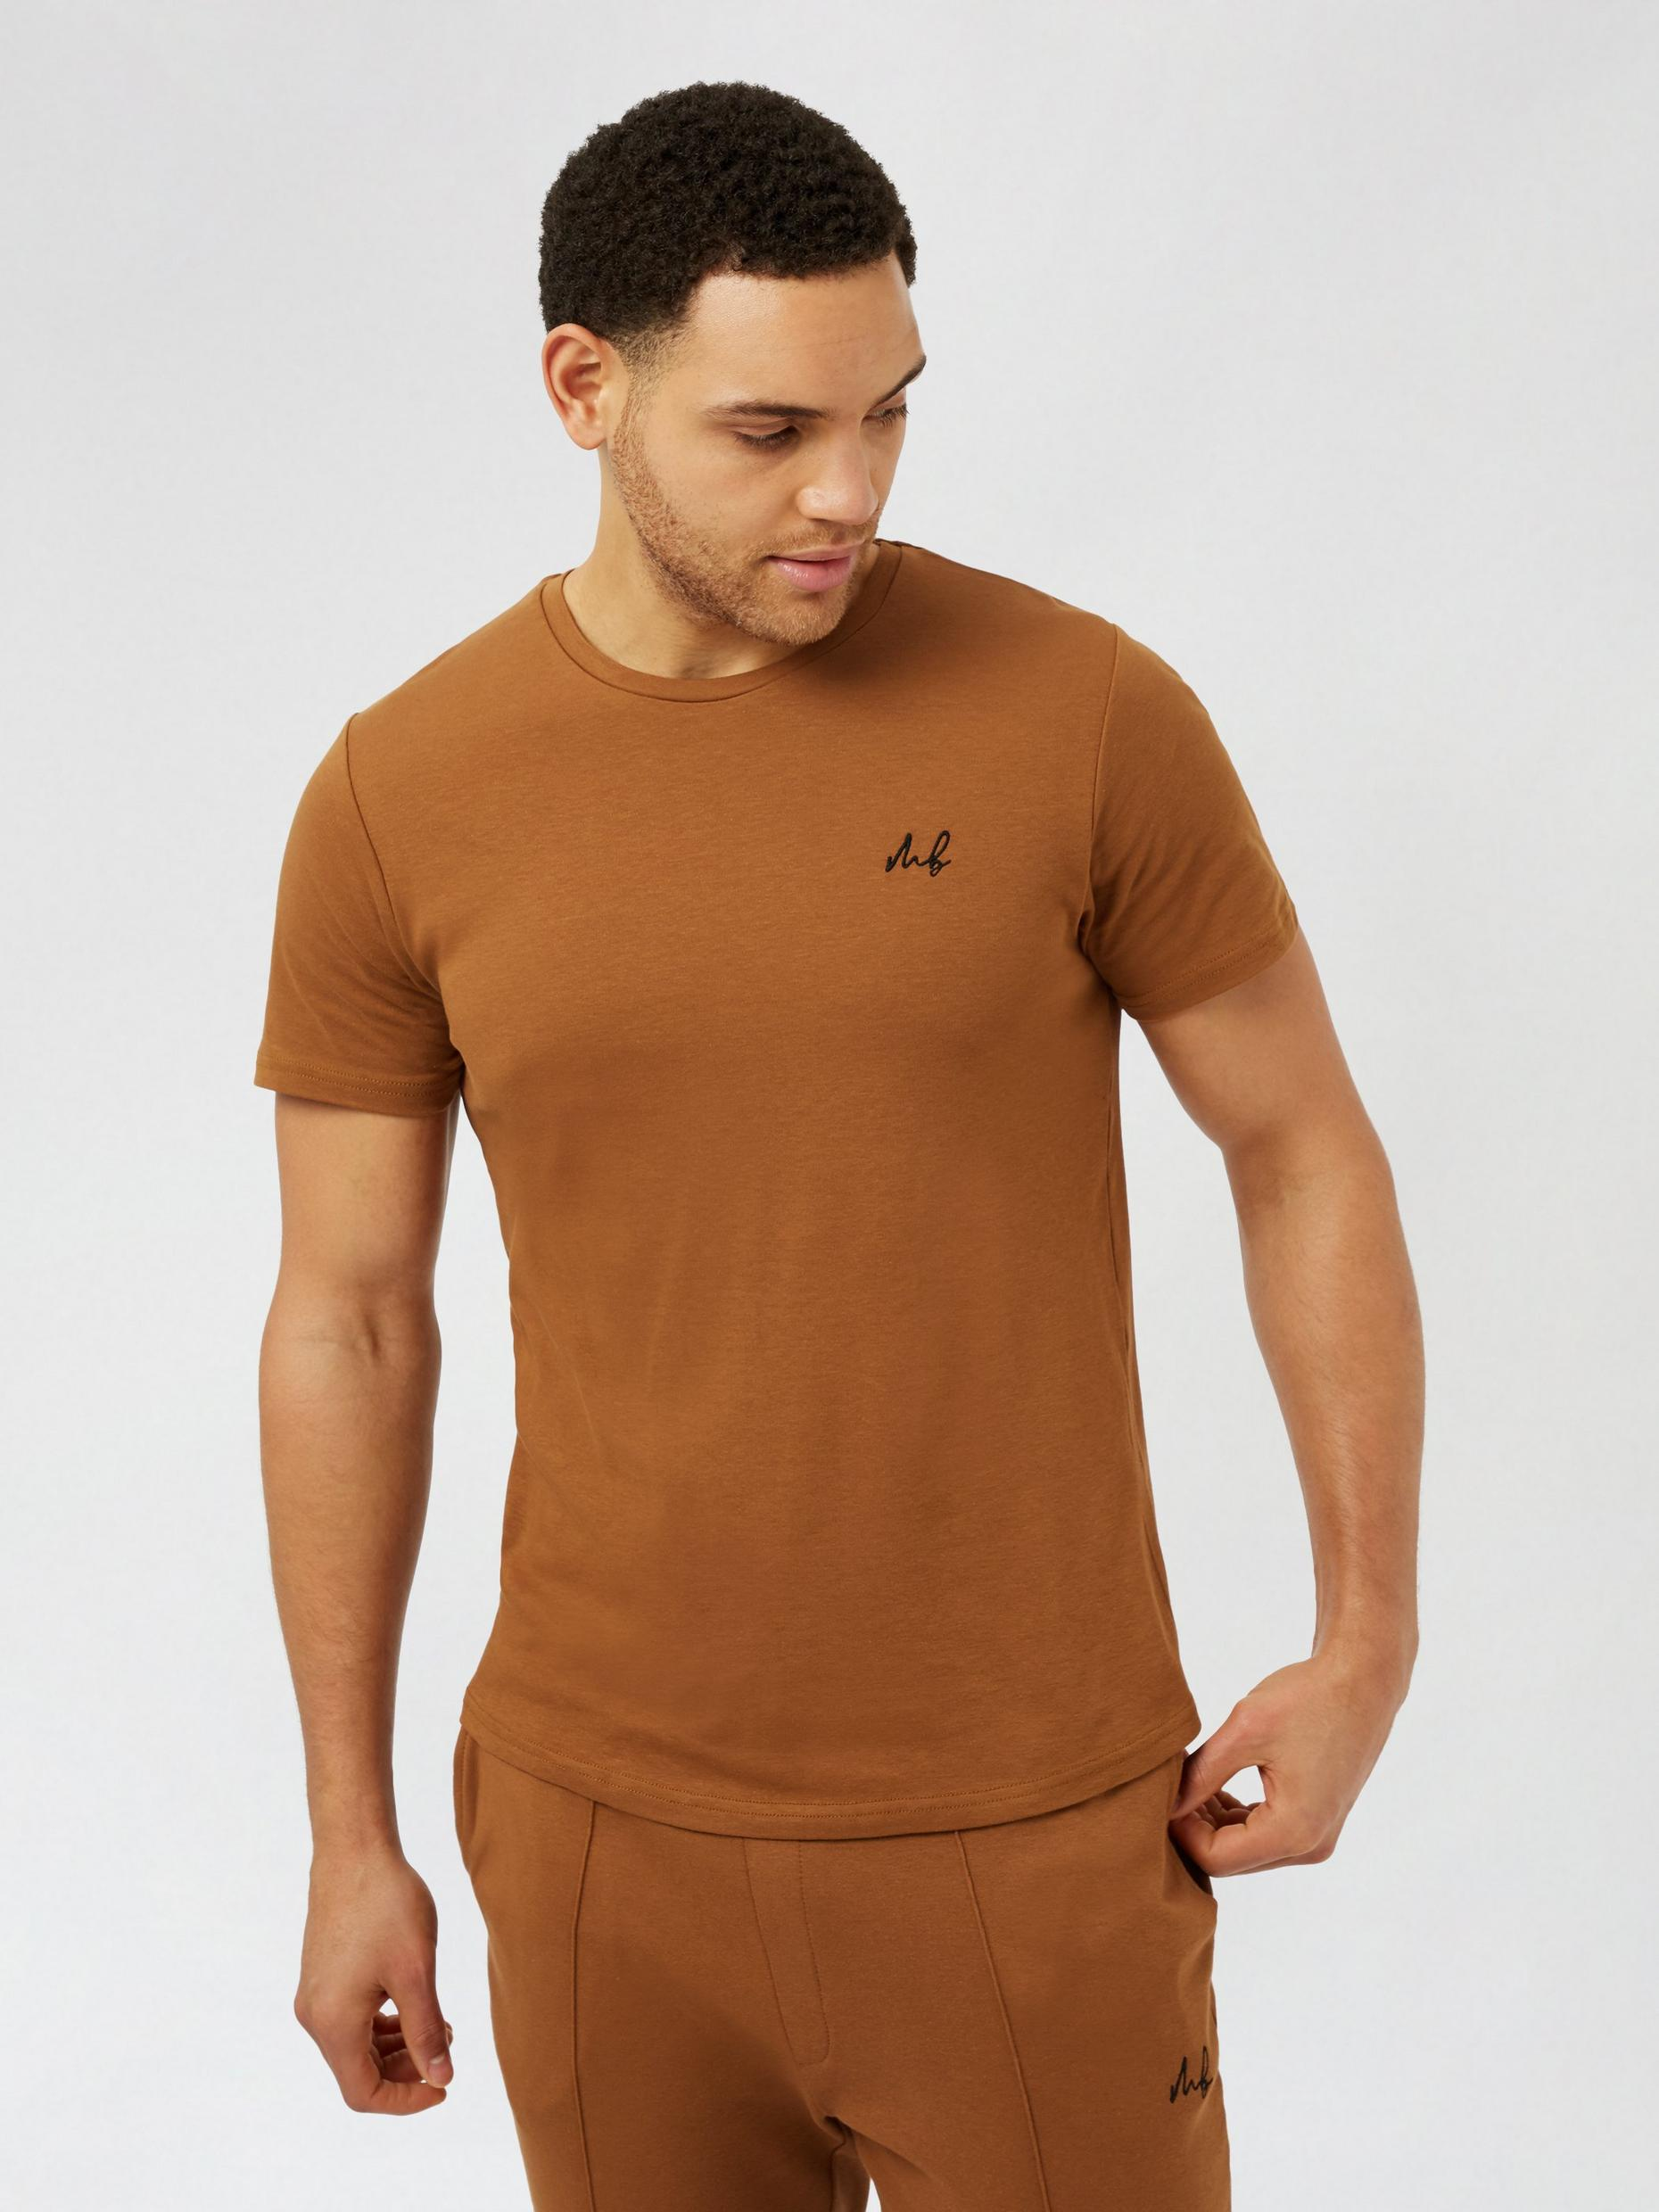 MB Brown Curve Embroidered Tee